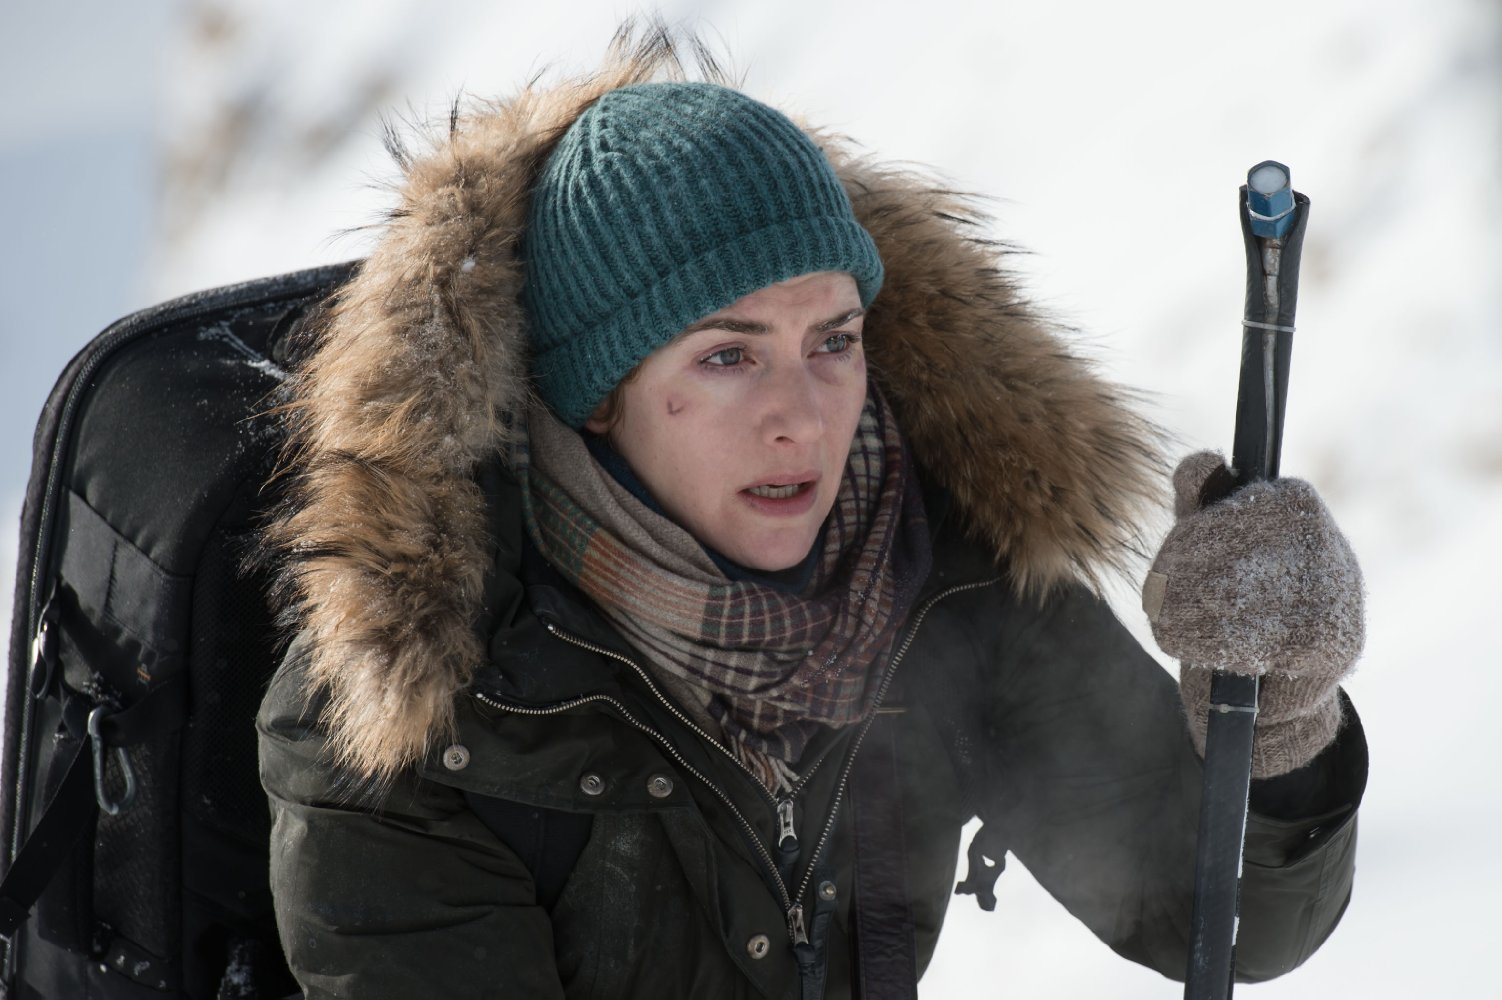 Still of Kate Winslet in The Mountain Between Us